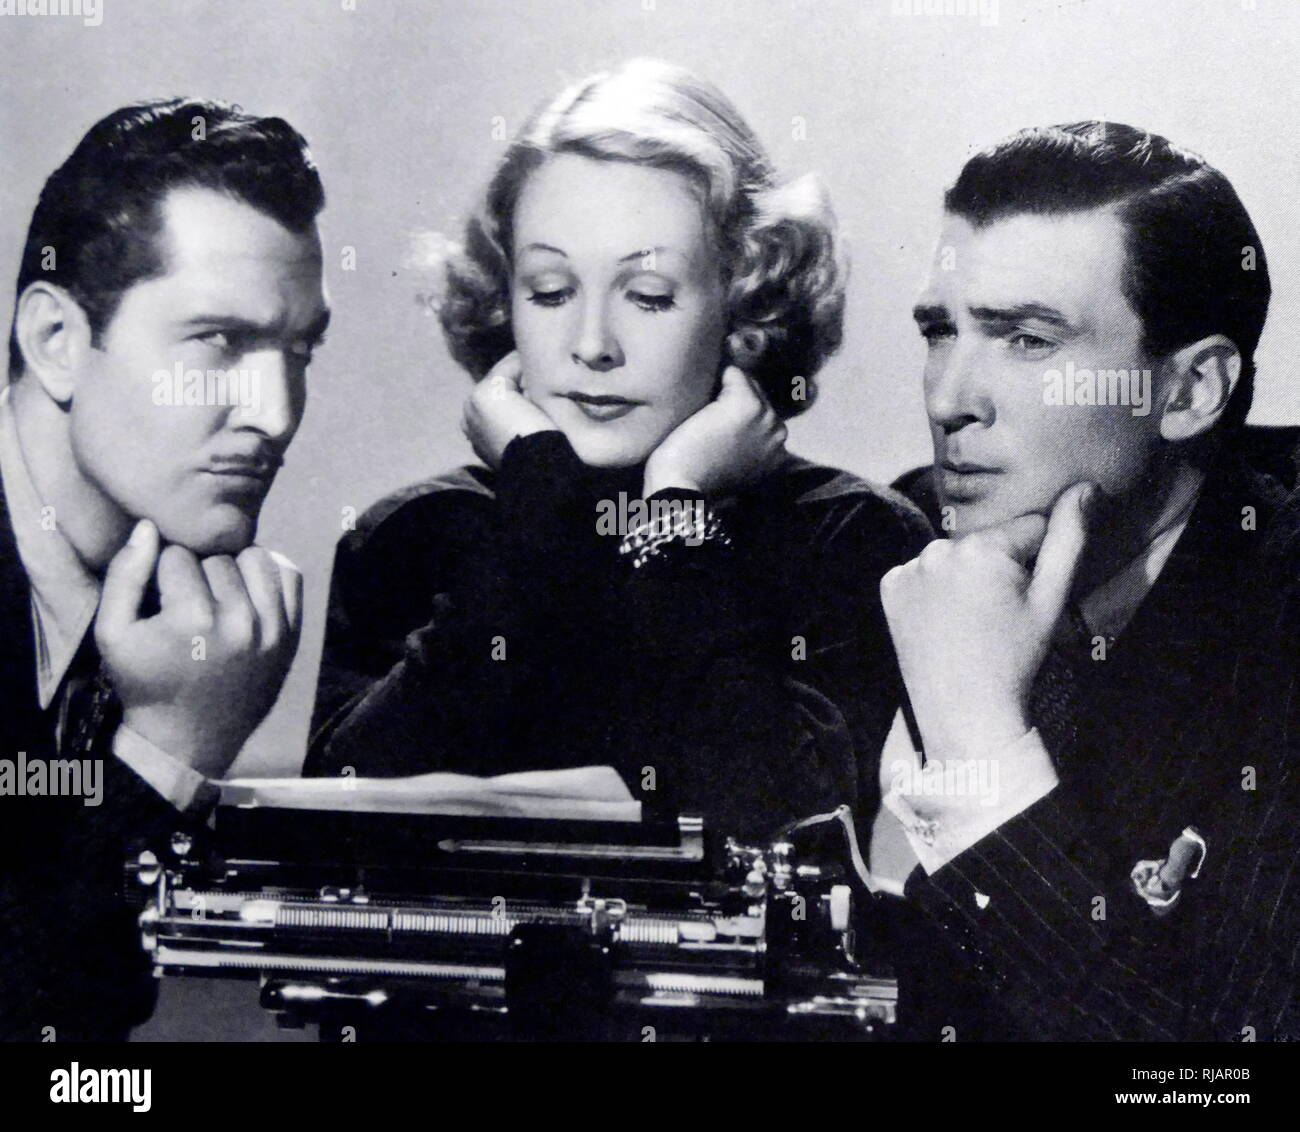 A Girl With Ideas is a 1937 American comedy-drama film, directed by S. Sylvan Simon for Universal Pictures. It stars Wendy Barrie, Walter Pidgeon, and Kent Taylor. - Stock Image